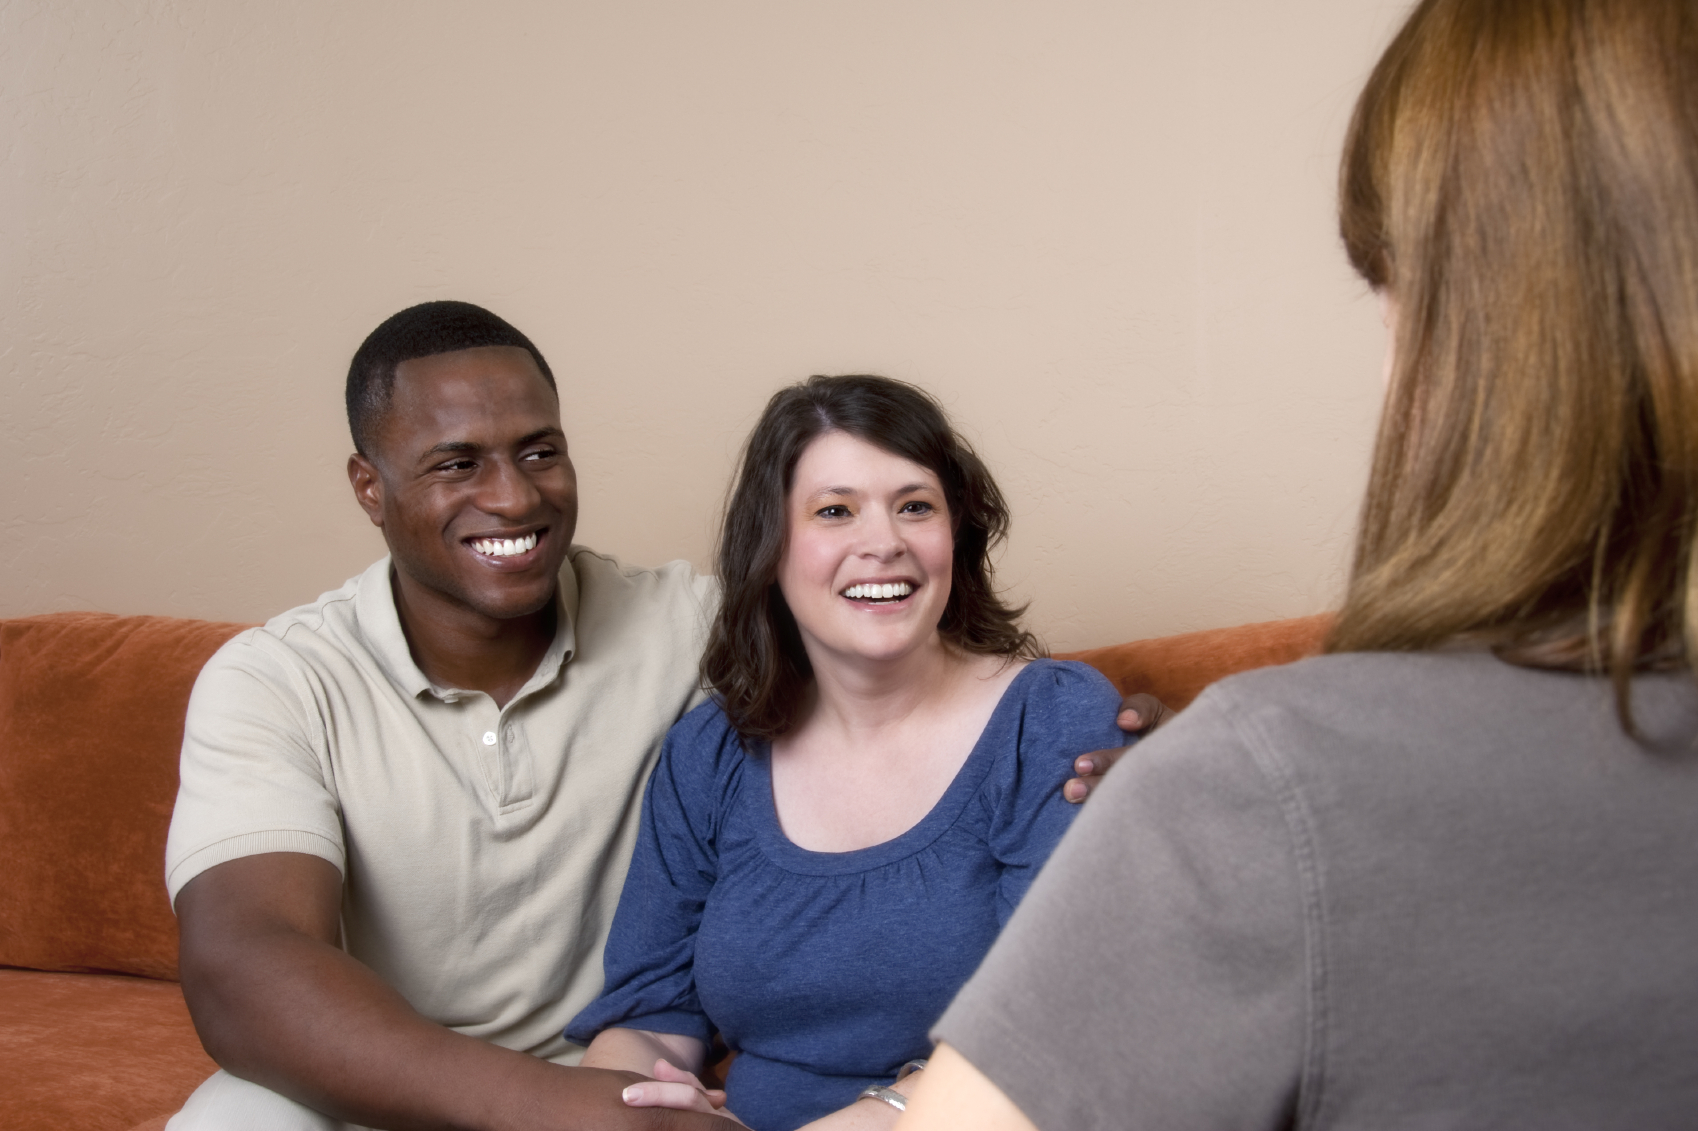 A surrogate and her husband at their psychological evaluation